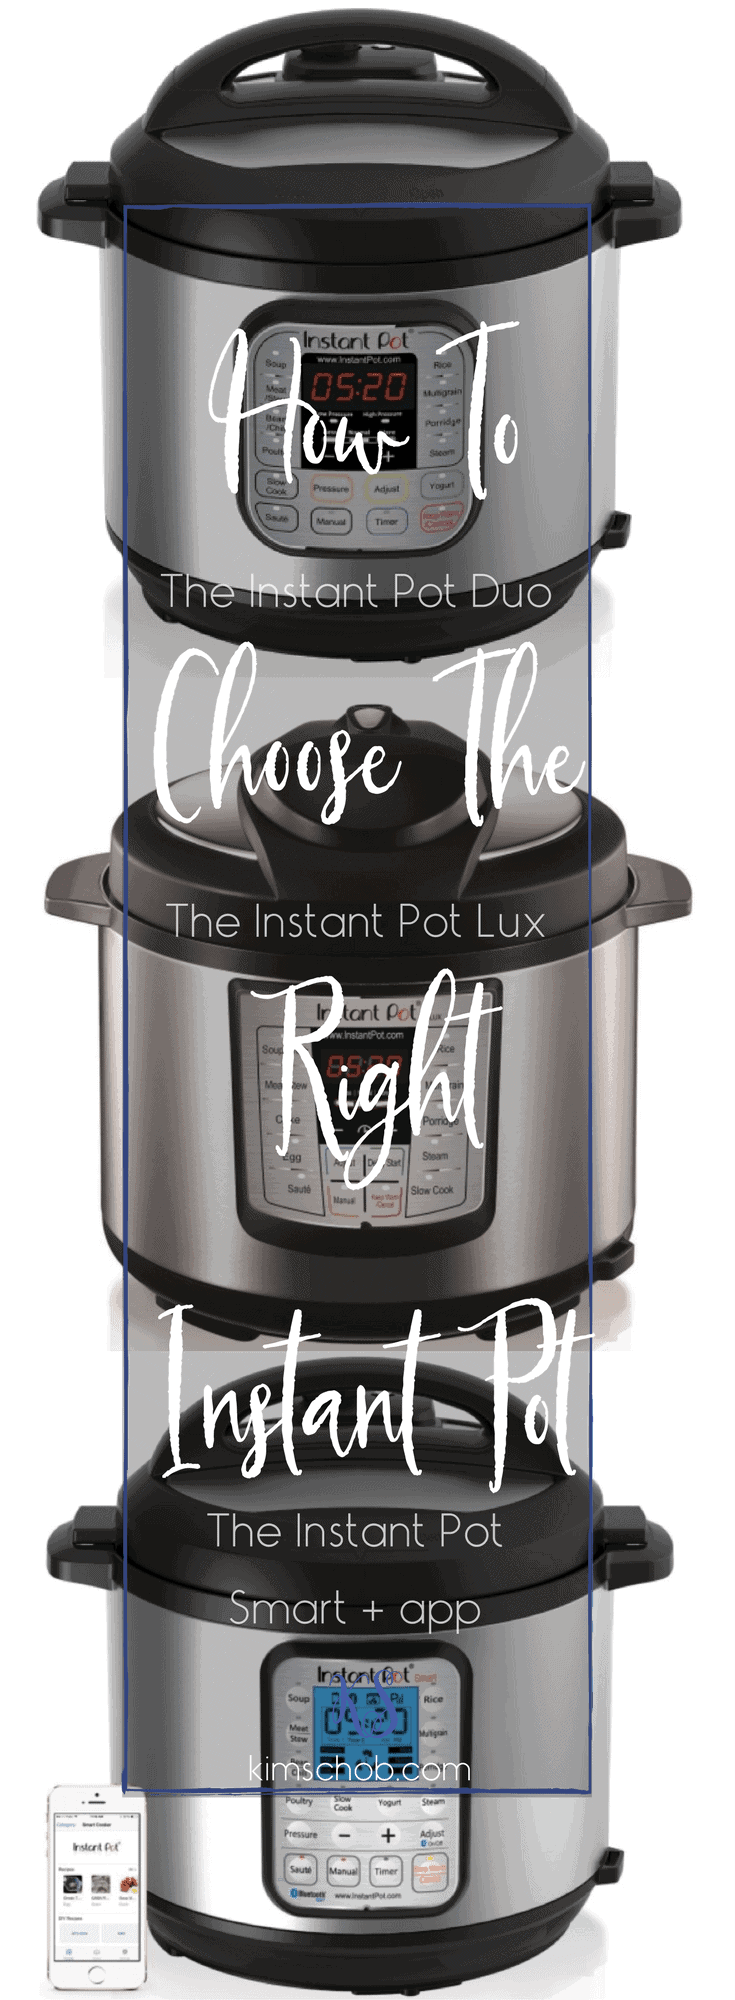 How To Choose The Right Instant Pot | kimschob.com 5-quart 6-quart or 8-quart? #instantpot #instapot #kimschob